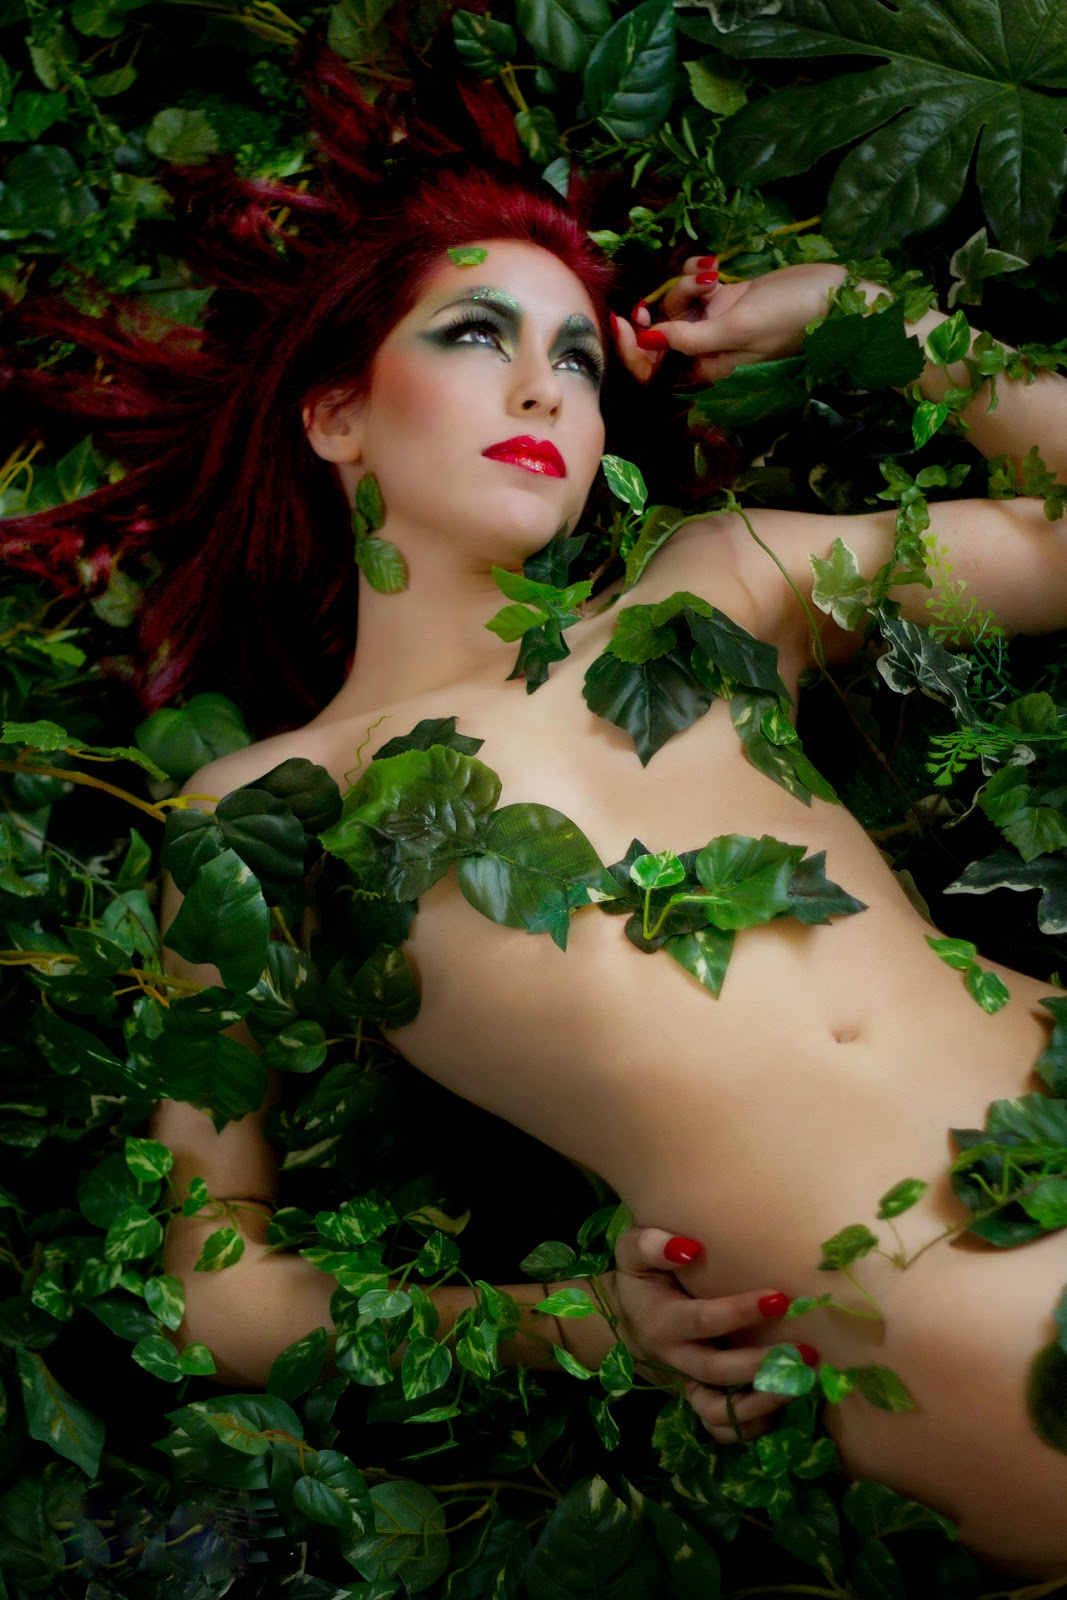 Poison Ivy 2, posted on Thursday, 31 July 2014